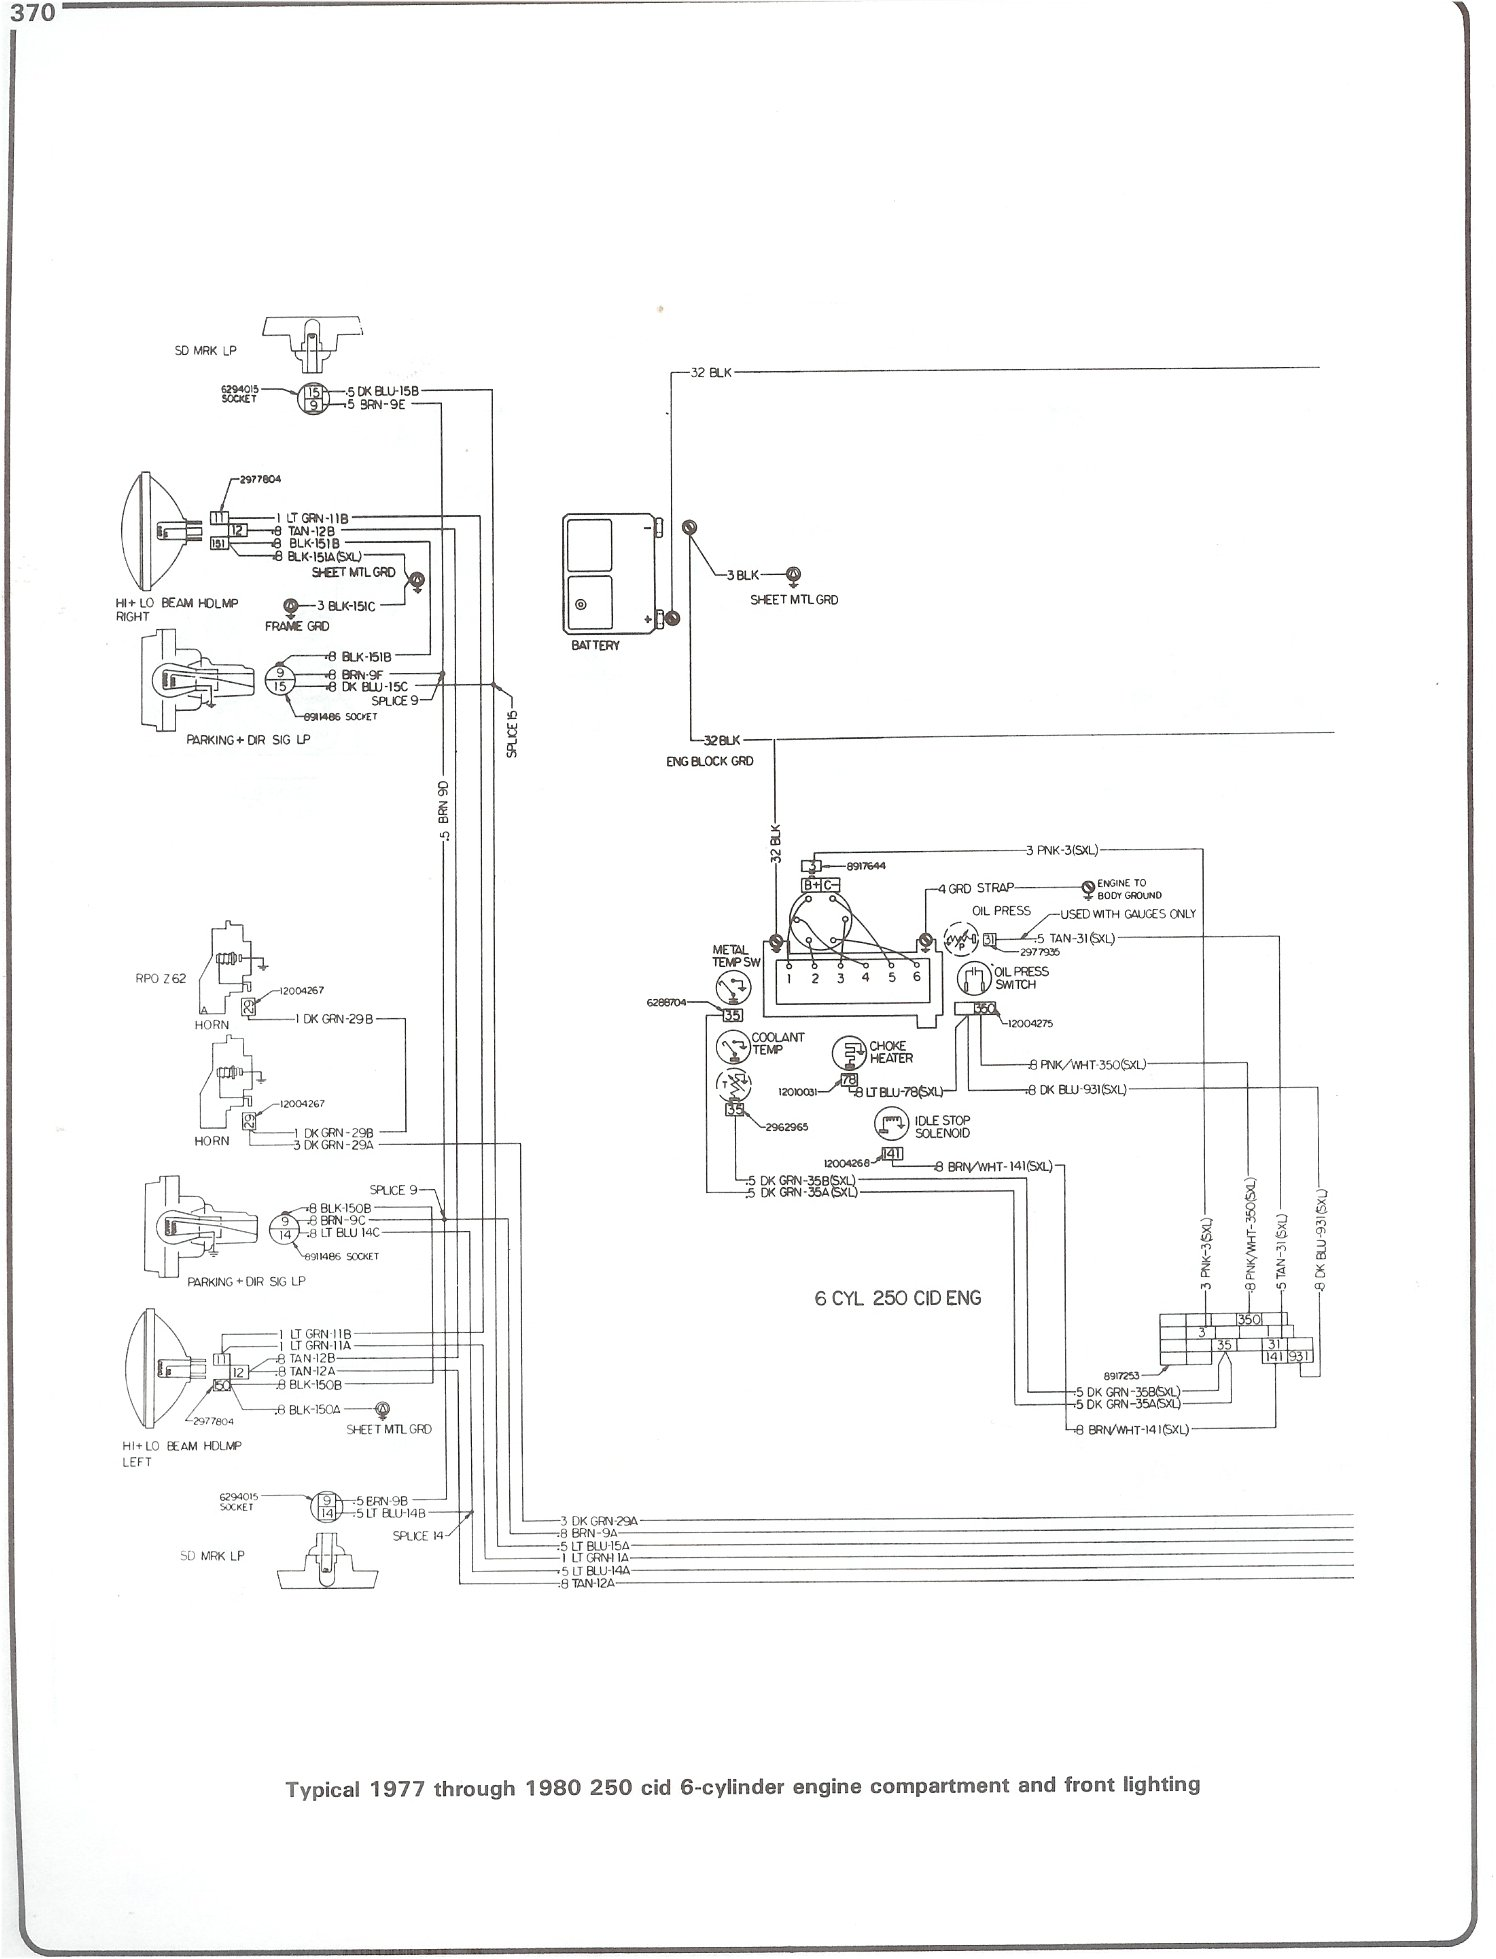 85 chevy alternator wiring wiring diagram libraries 2000 s10 alternator wiring diagram wiring library85 chevy wiring diagram detailed schematics diagram 98 chevy alternator